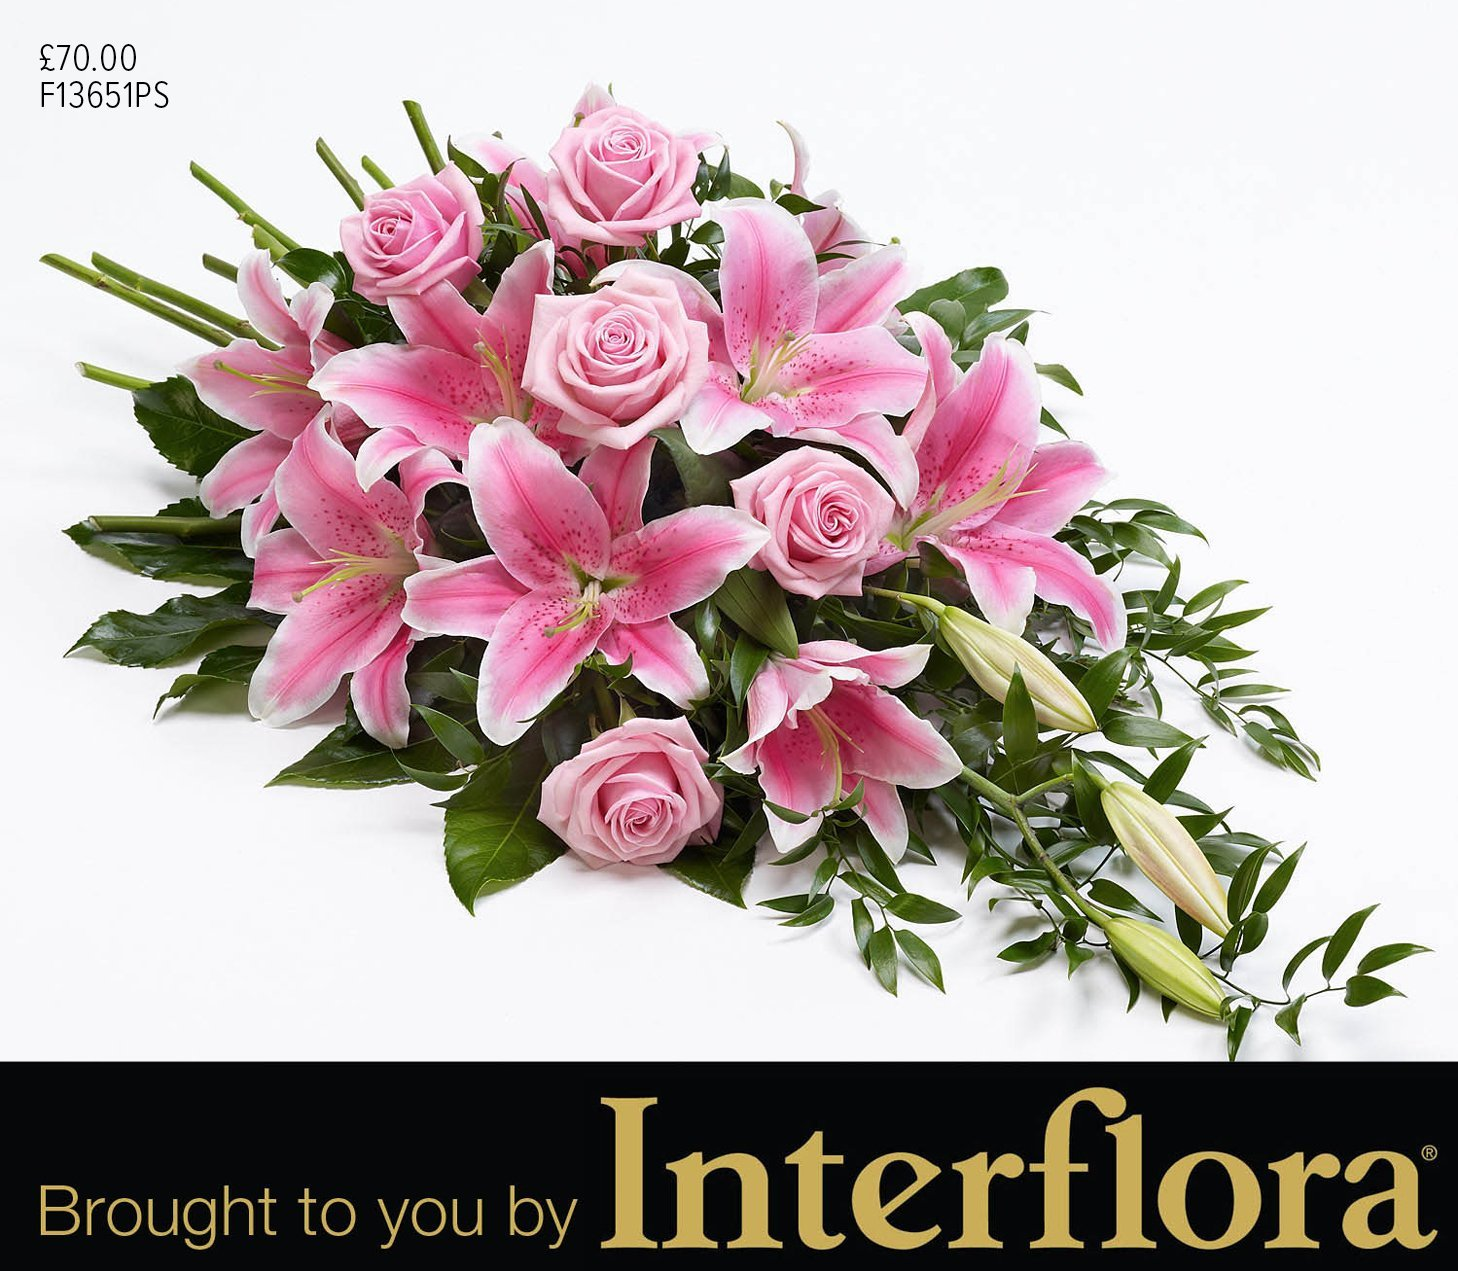 Mortons single ended arrangement flowers brought to you by Interflora